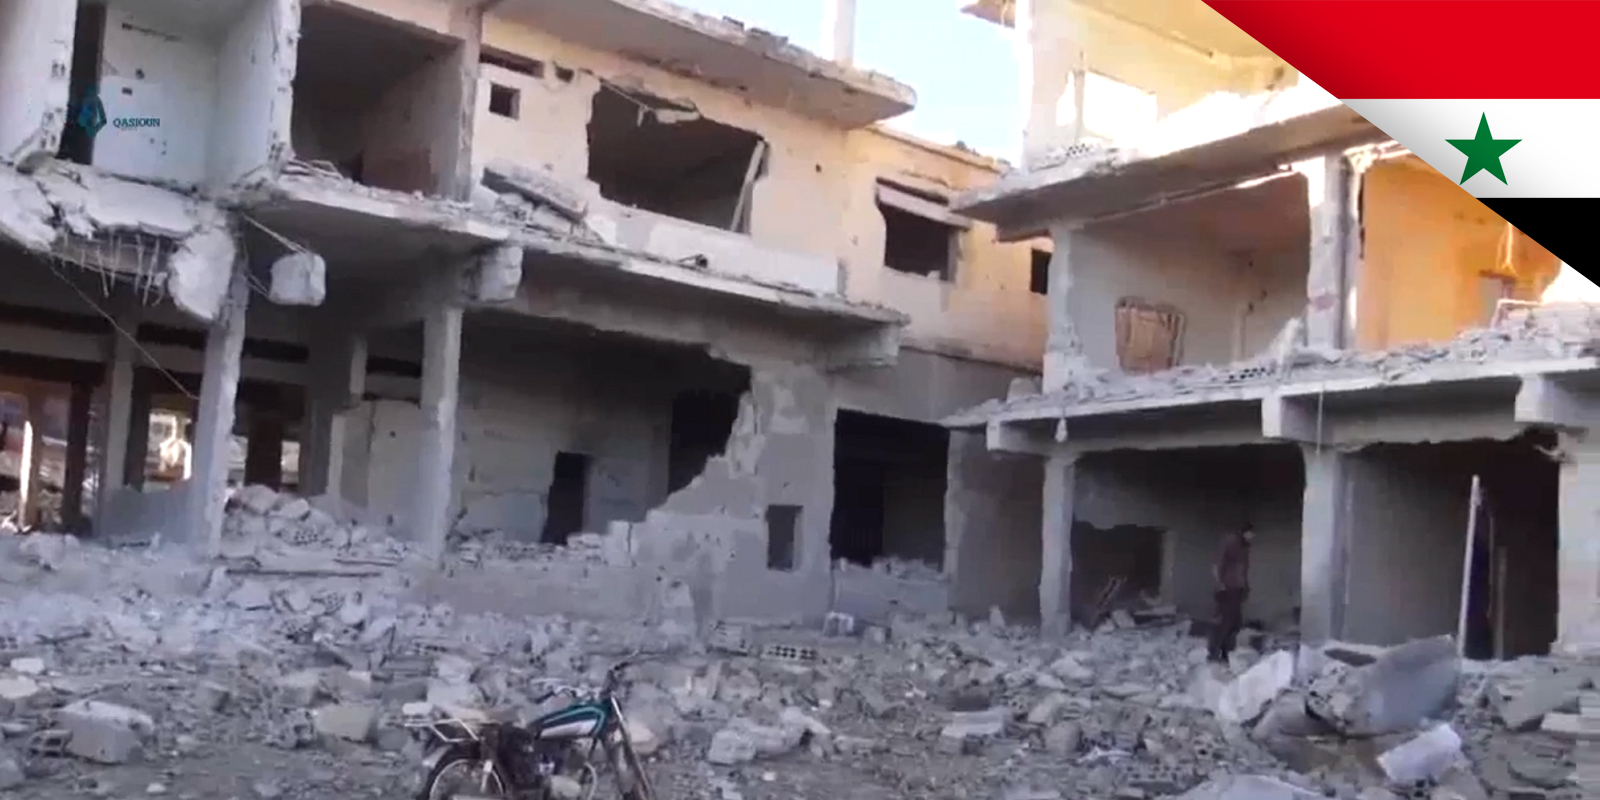 An area in the rebel-held al-Balad district of Daraa that has been destroyed by the Syrian government's artillery and air force during an offensive in June 2017.